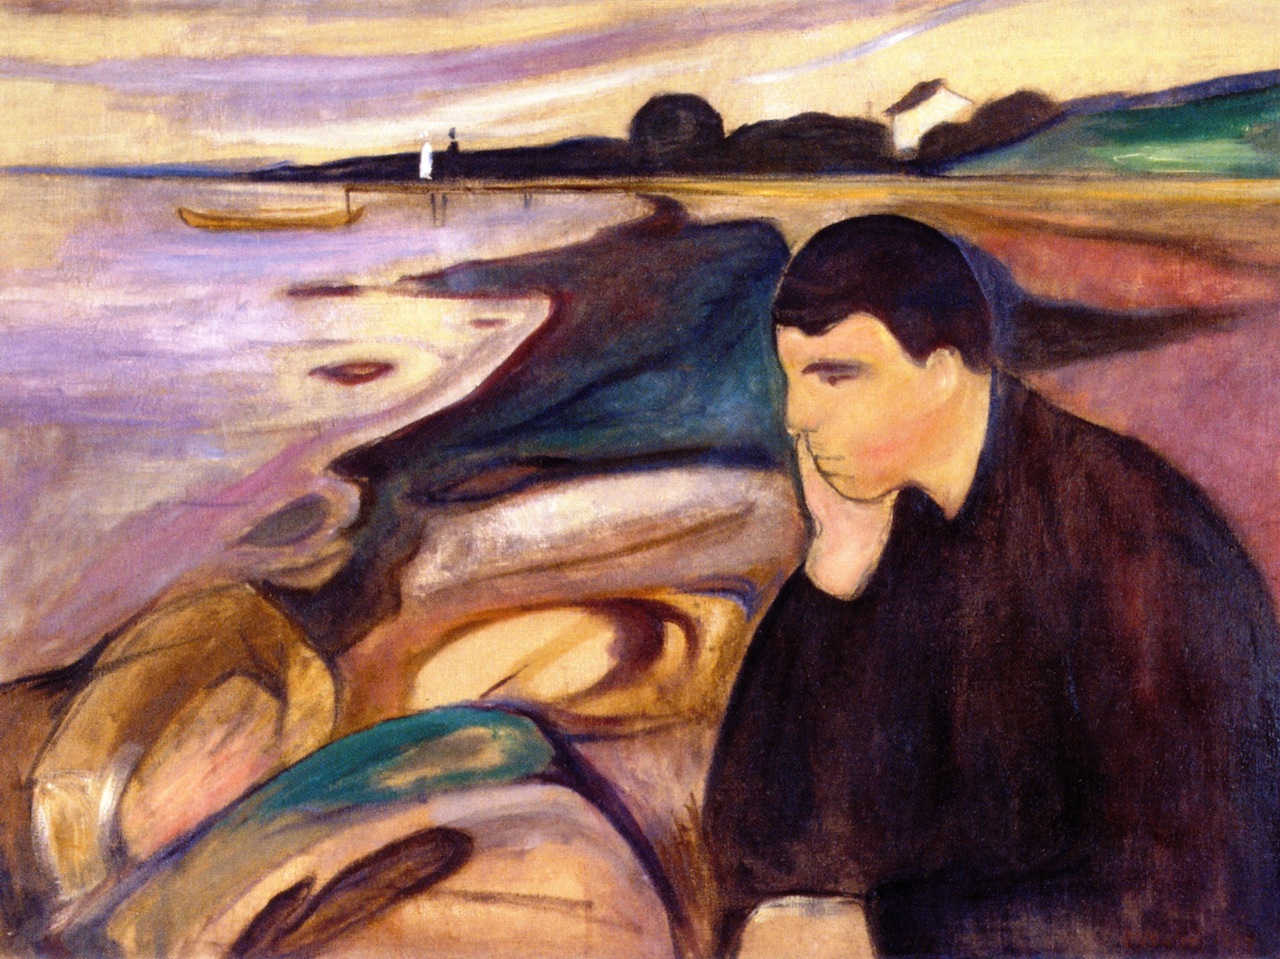 https://commons.wikimedia.org/wiki/File:Edvard_Munch_-_Melancholy_(1894).jpg